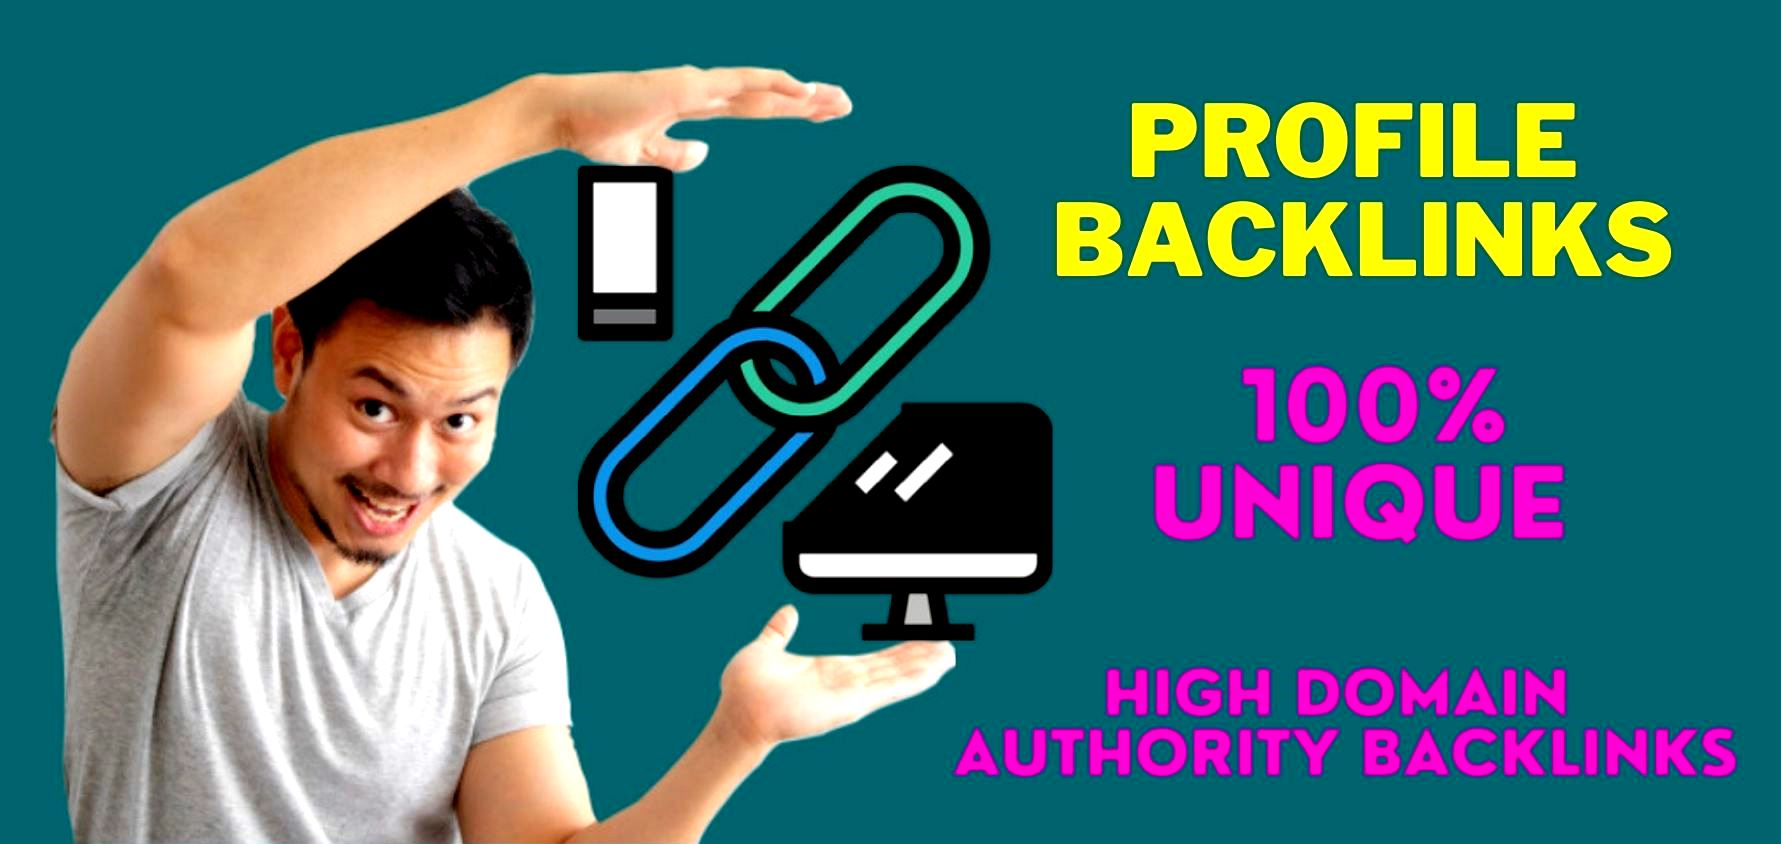 I will make 30 high quality, high Domin Authority Dofollow Backlinks for off page SEO services